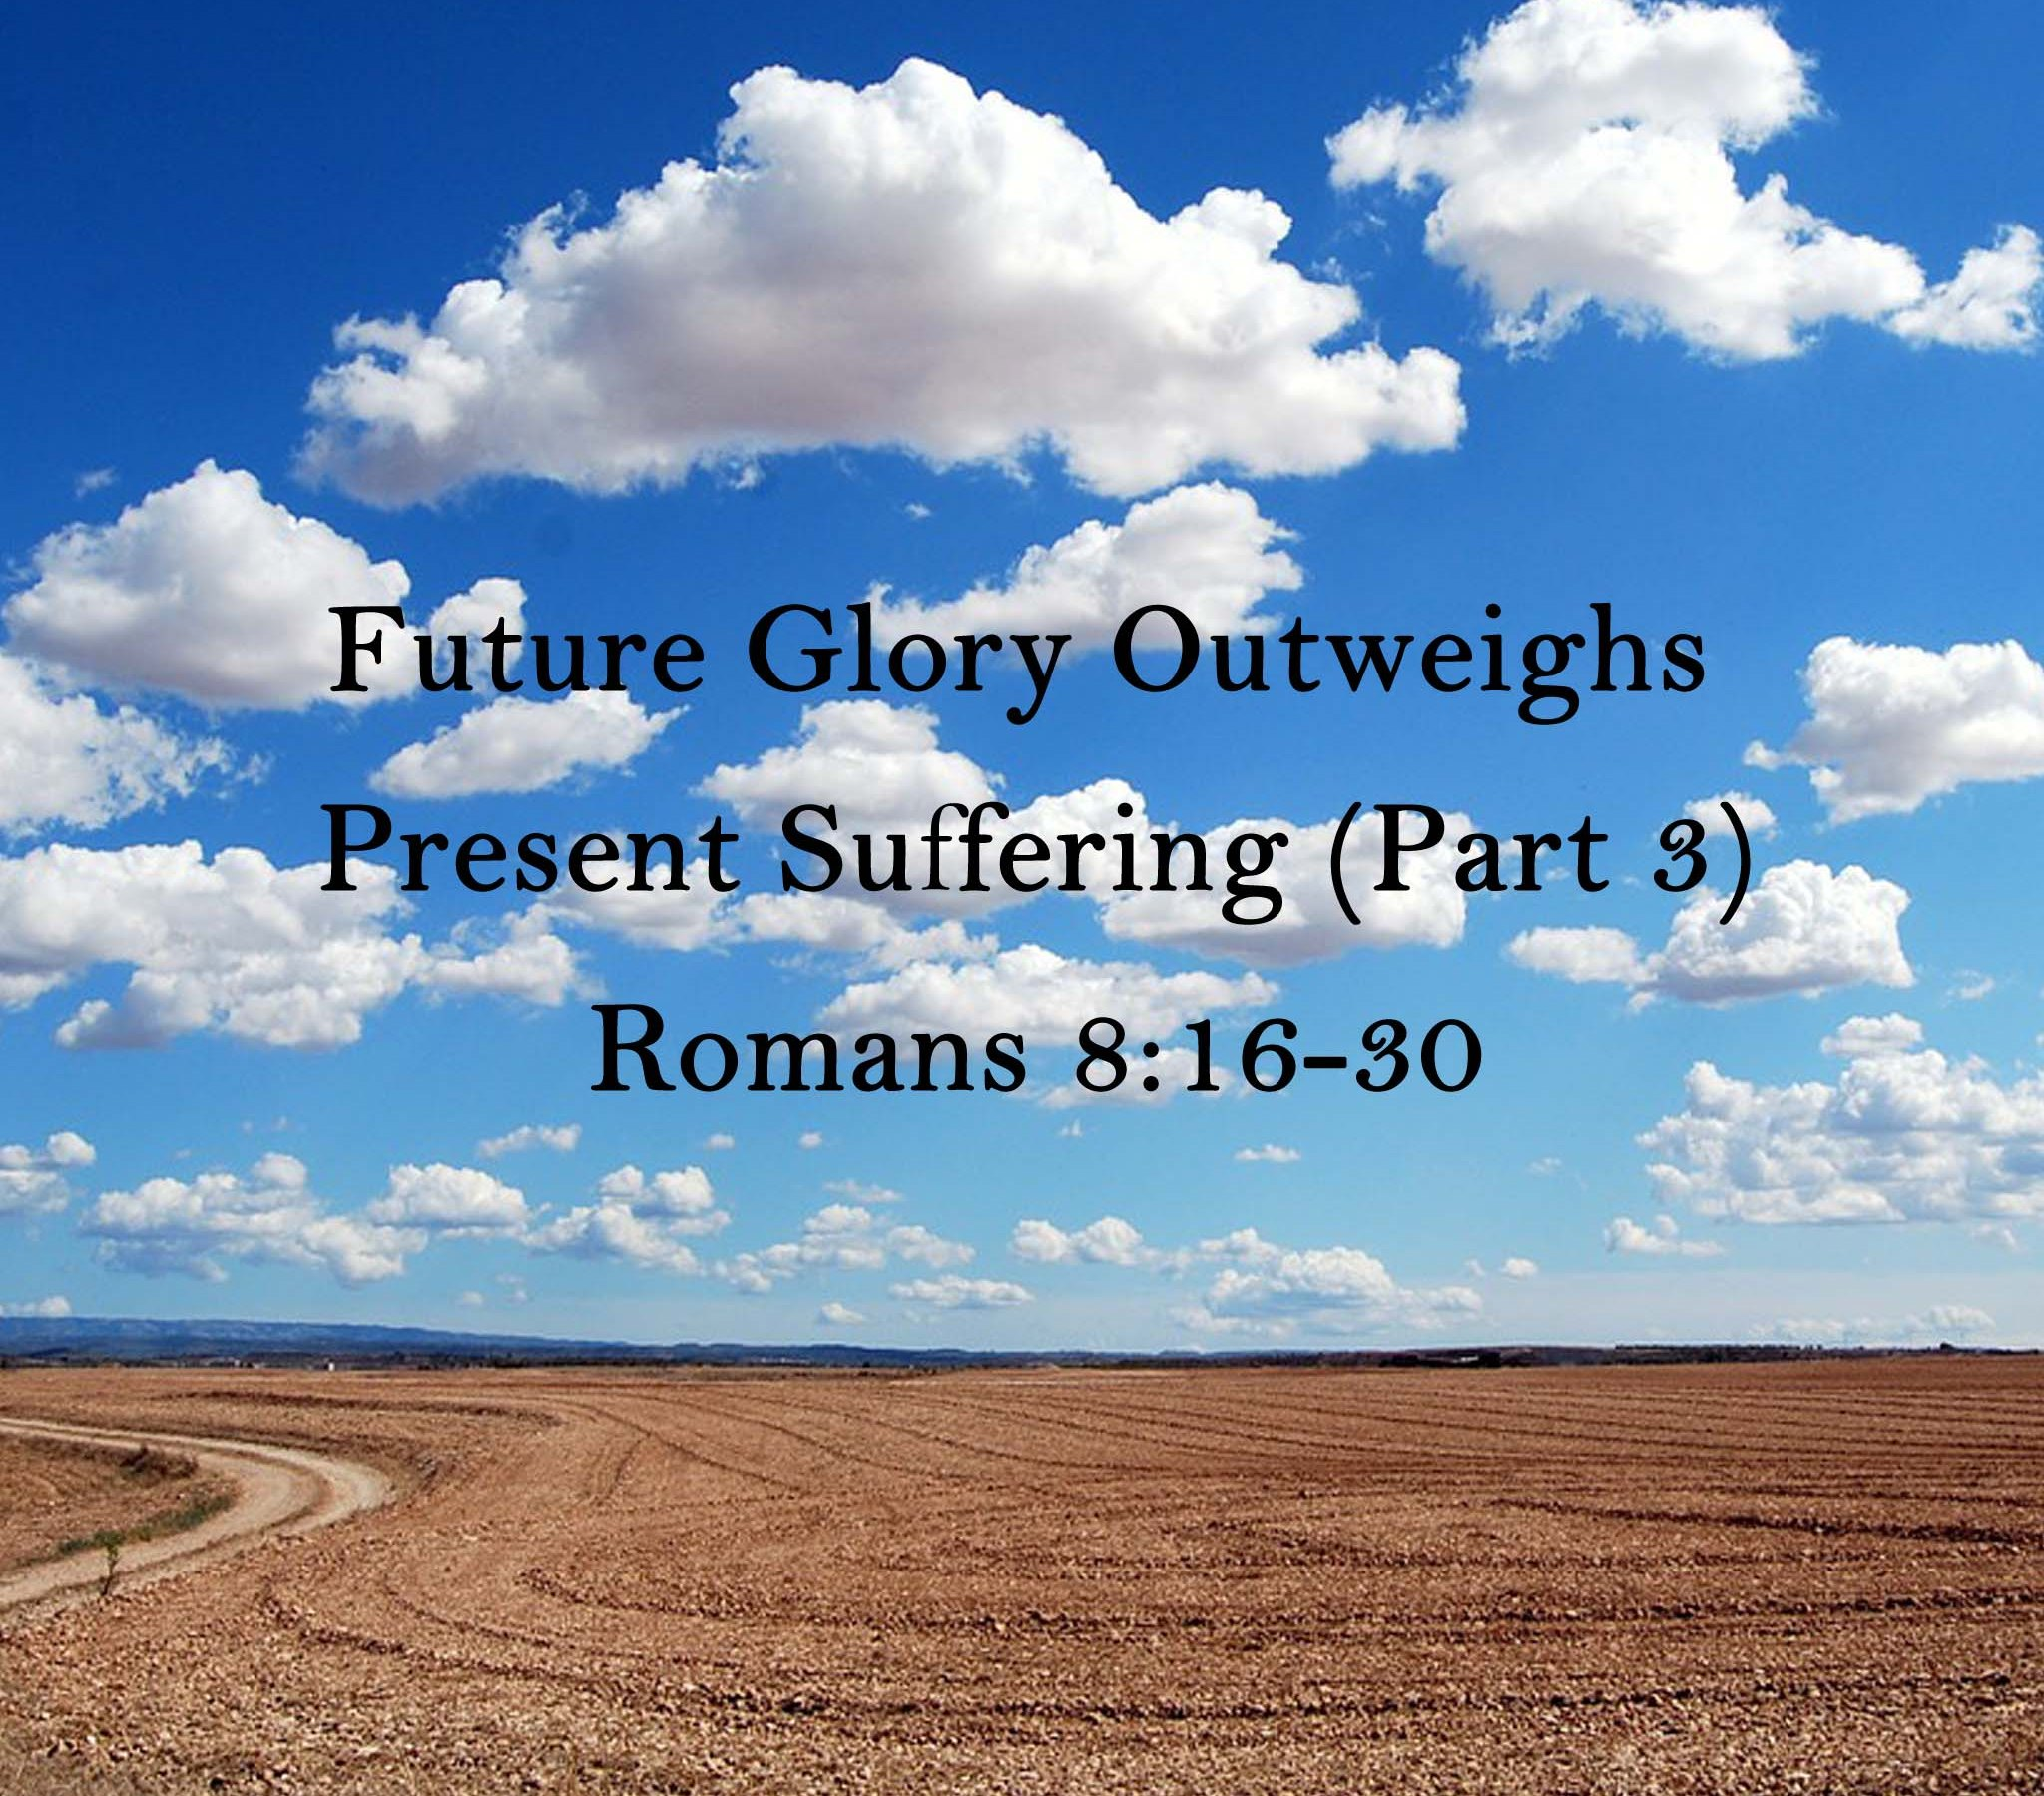 Sermon: Future Glory Outweighs Present Suffering (Part 3